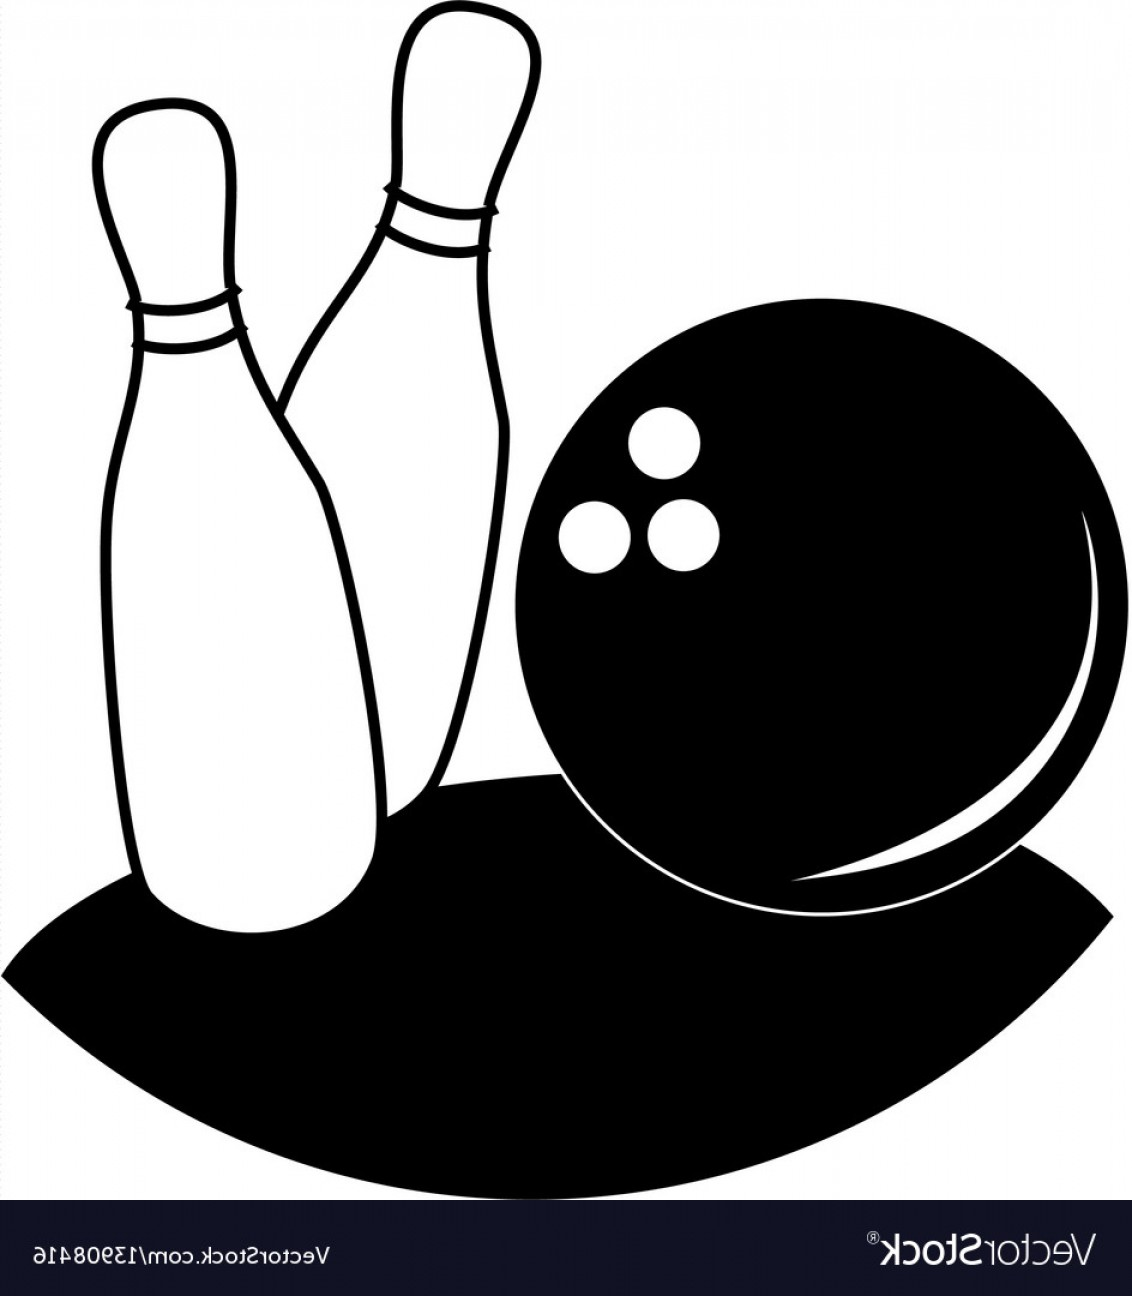 1132x1296 Monochrome Silhouette With Bowling Pins And Ball Vector Geekchicpro